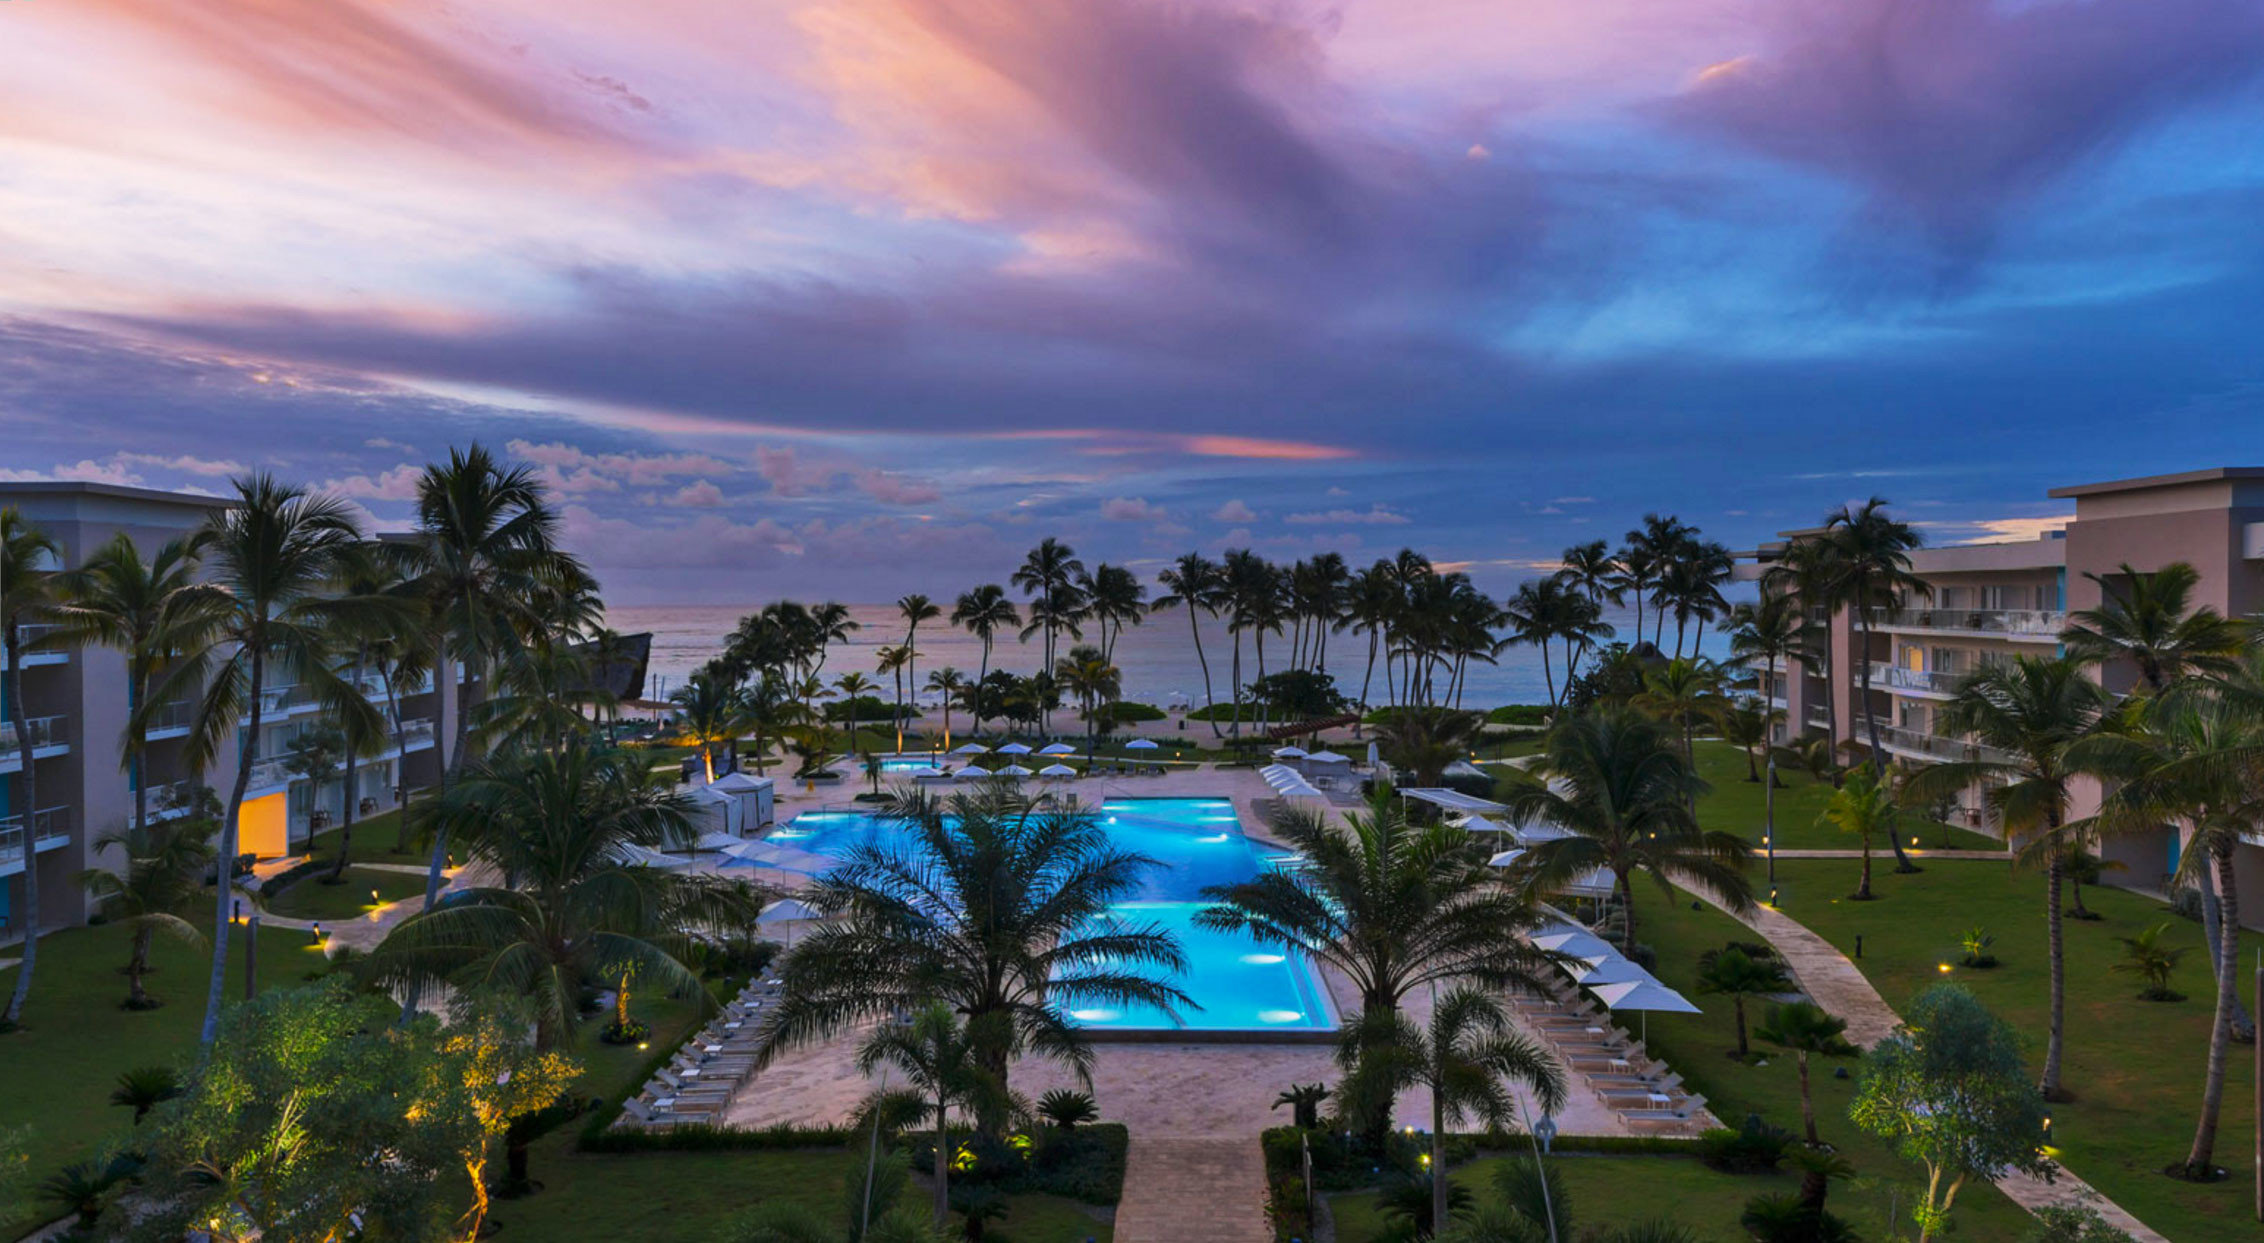 Hotels sky outdoor tree grass reflection evening cityscape Resort estate dusk Sea Sunset bay clouds day